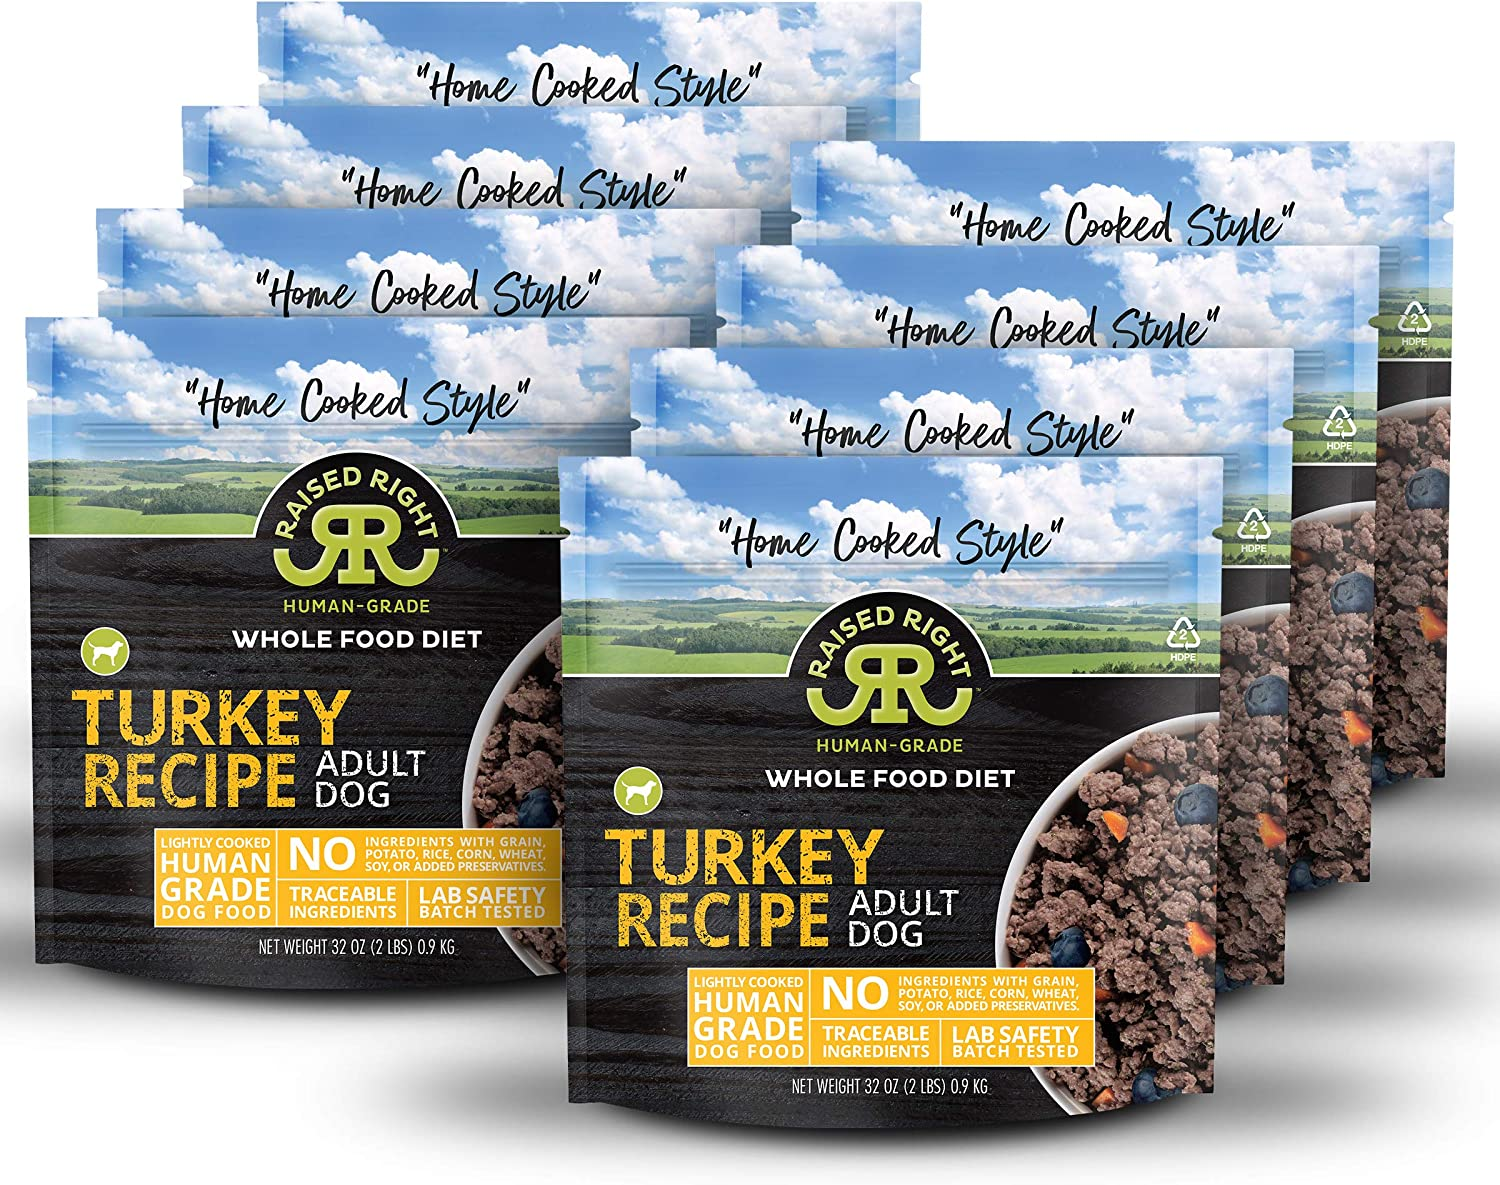 """Raised Right Turkey Human-Grade Frozen Dog Food, Low Carb """"Home Cooked Style"""" Whole Food Diet - 2 lb. Bag, 8 Count"""